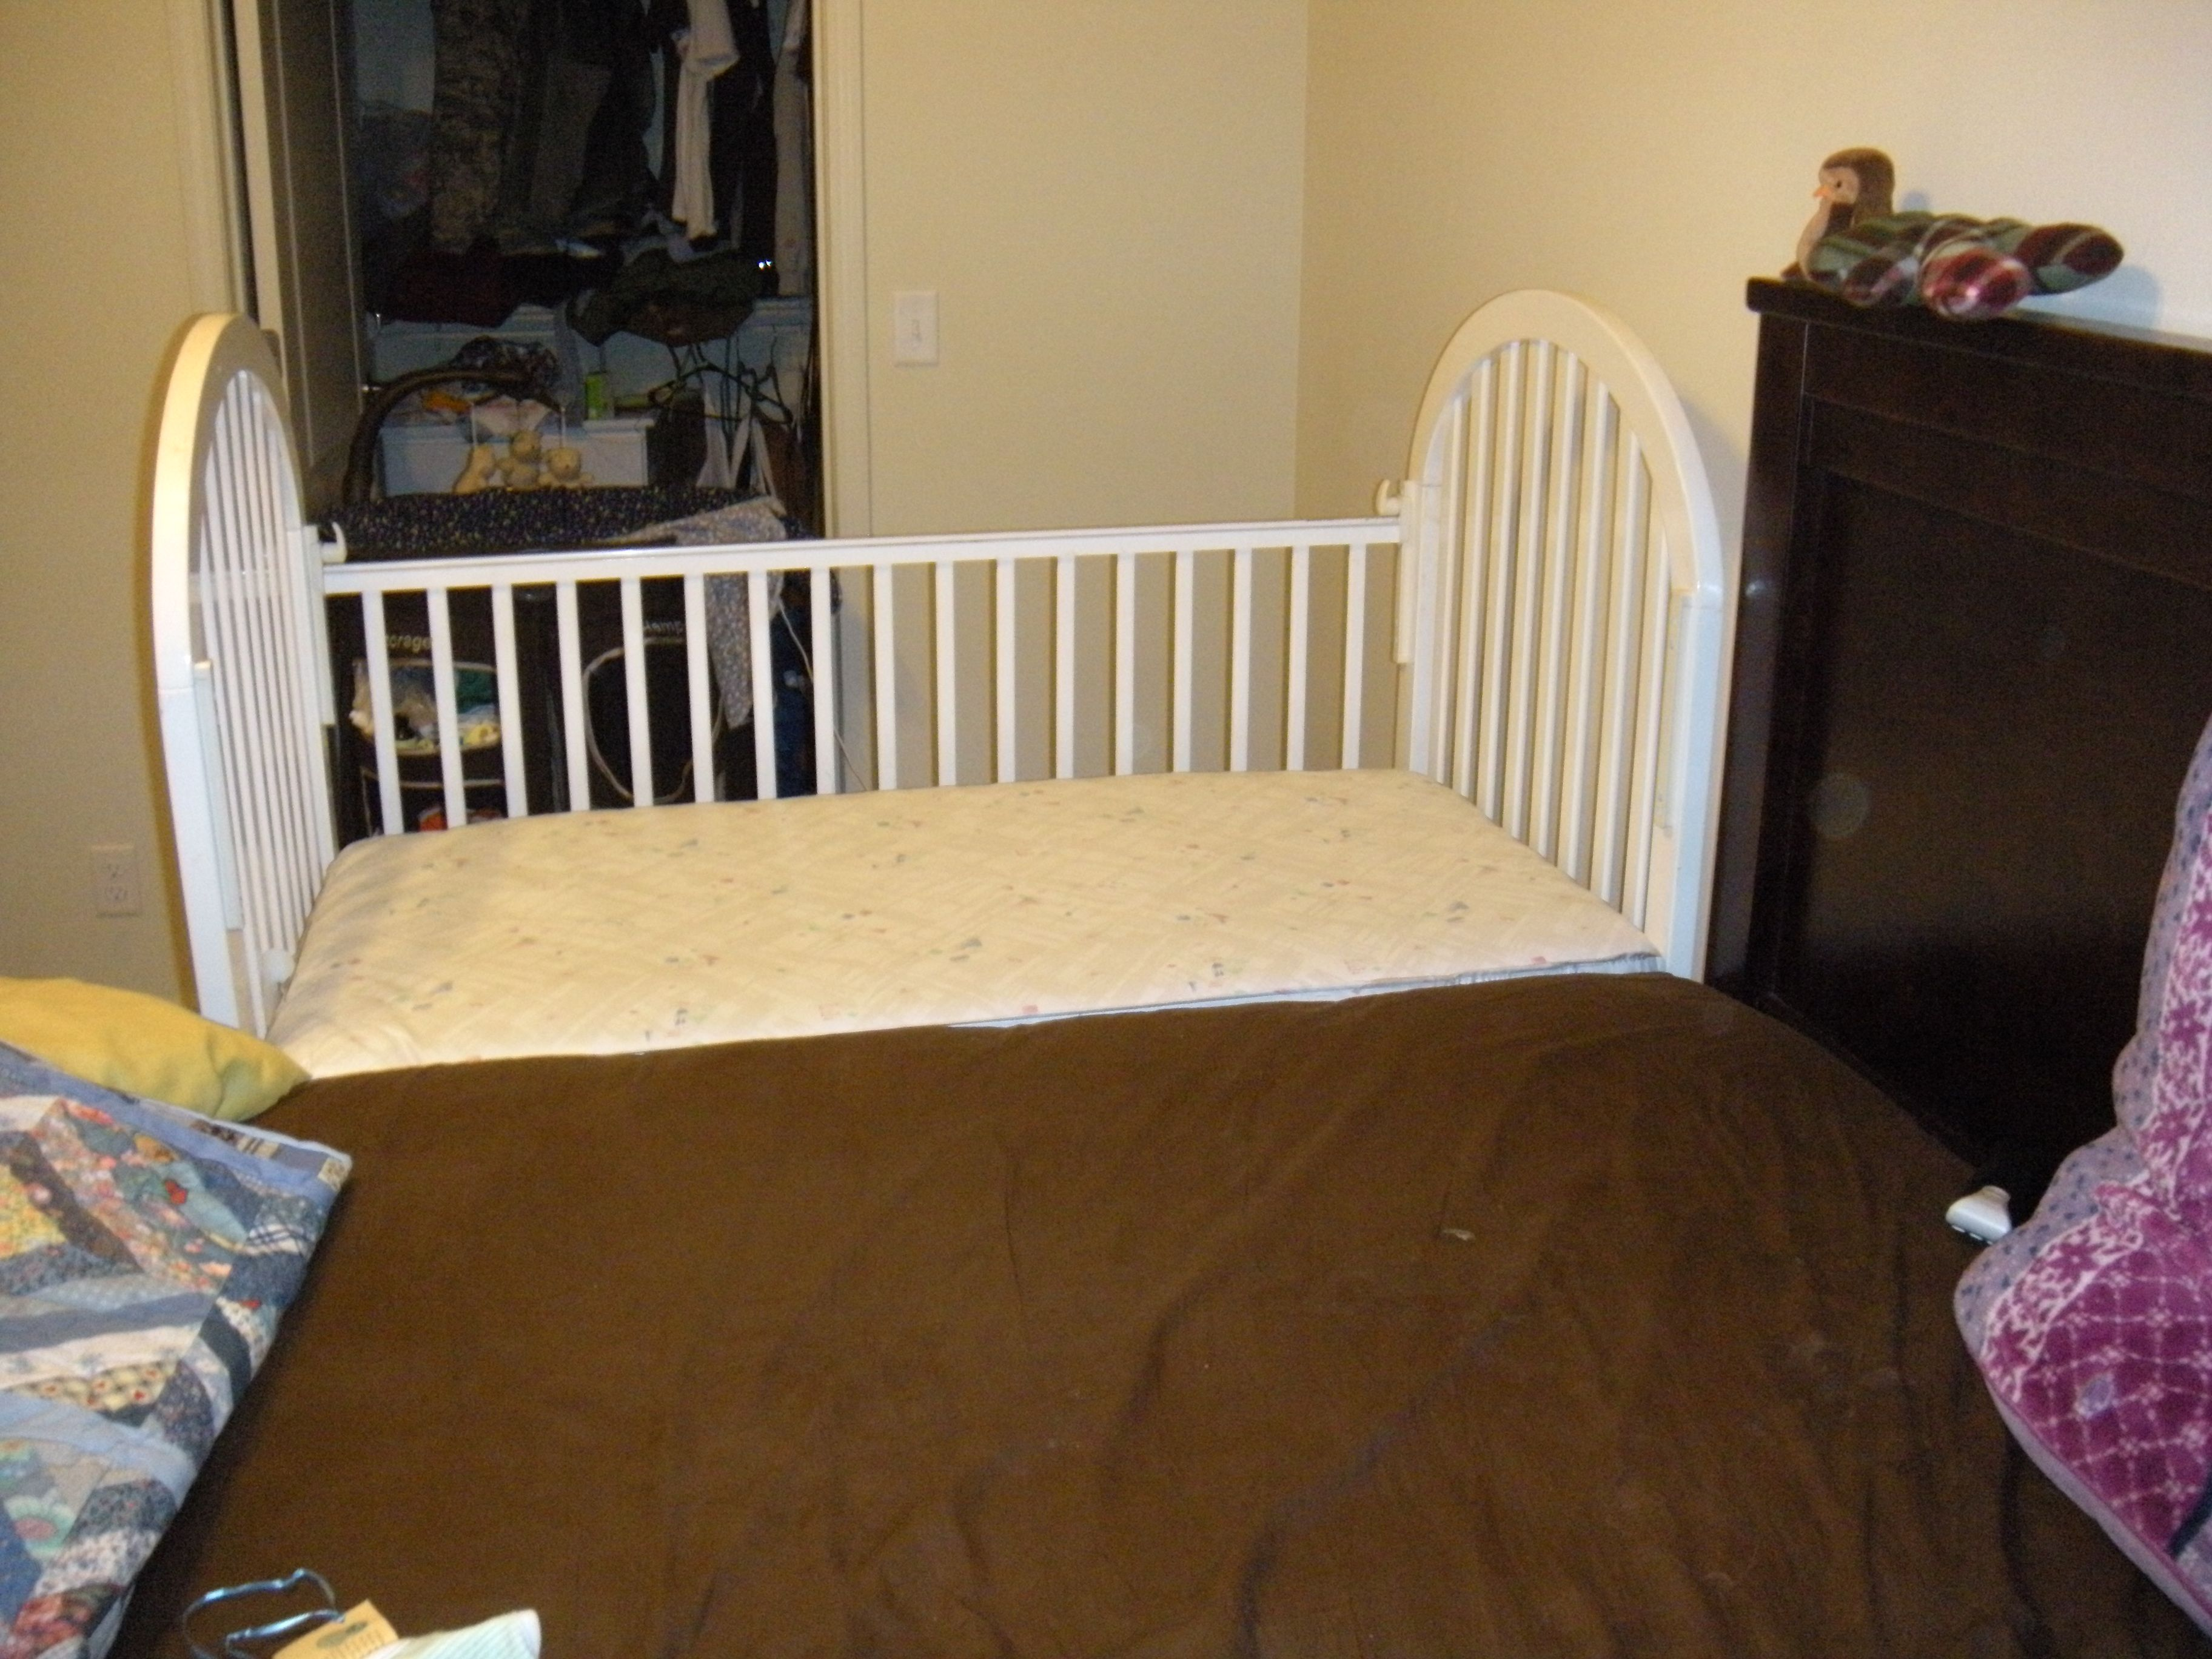 Baby cribs that attach to bed - Making A Side Car For Co Sleeping Is Easy And Cheap I Used A Handmedown